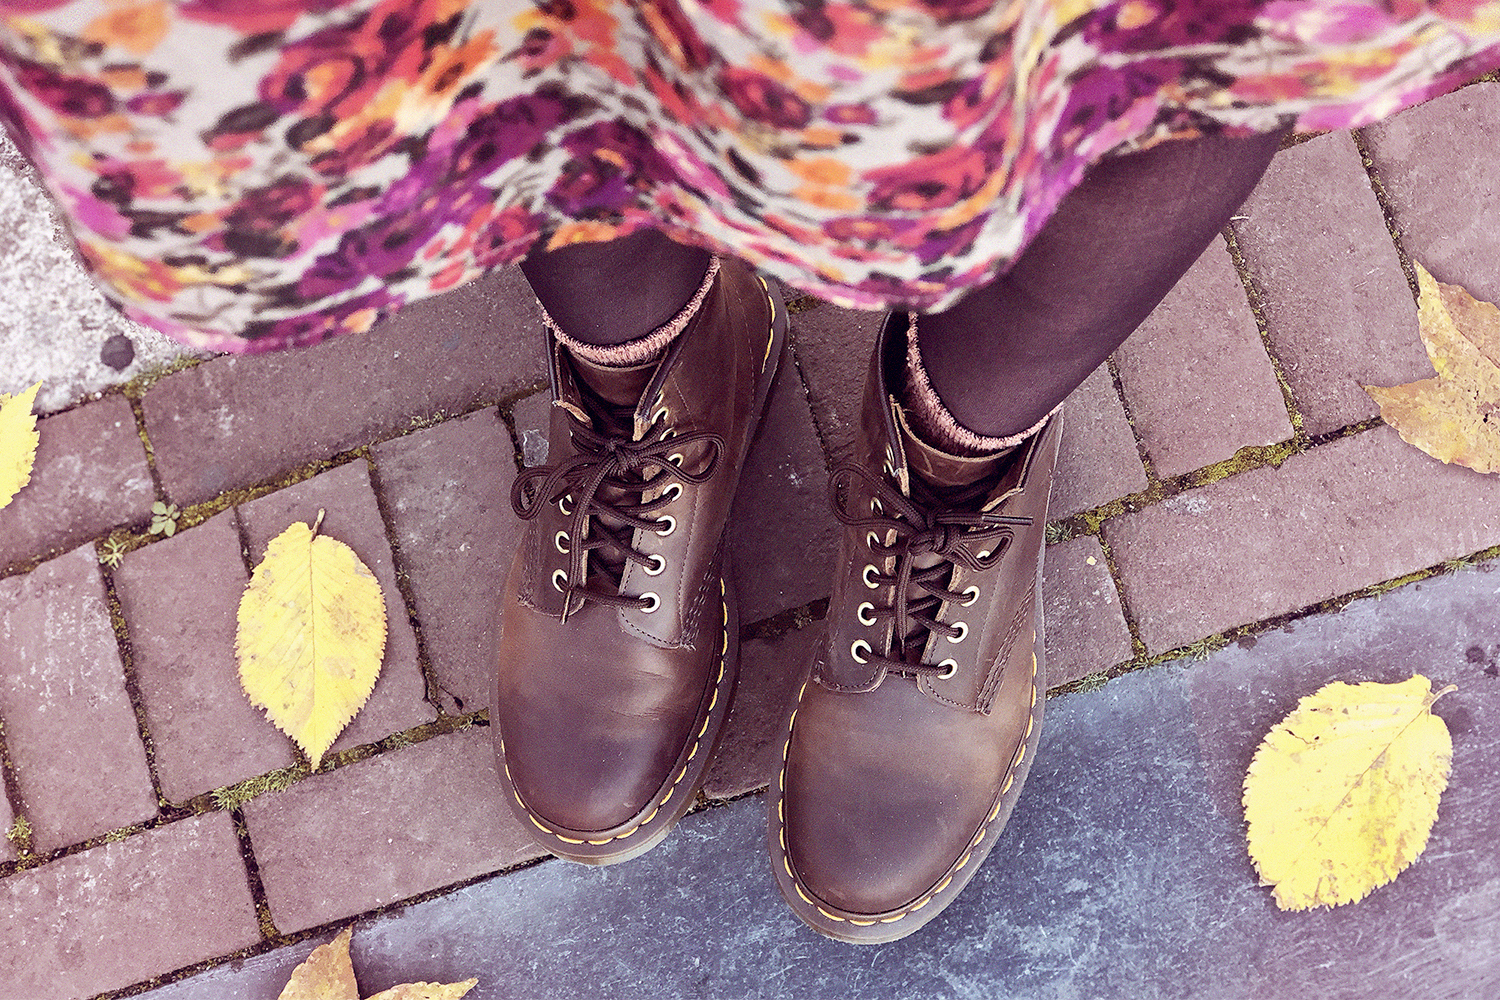 Retromantisch thrifted dress bloemenjurkje floral dress vintage Dr Martens brown boots fashion blog outfit Amsterdam